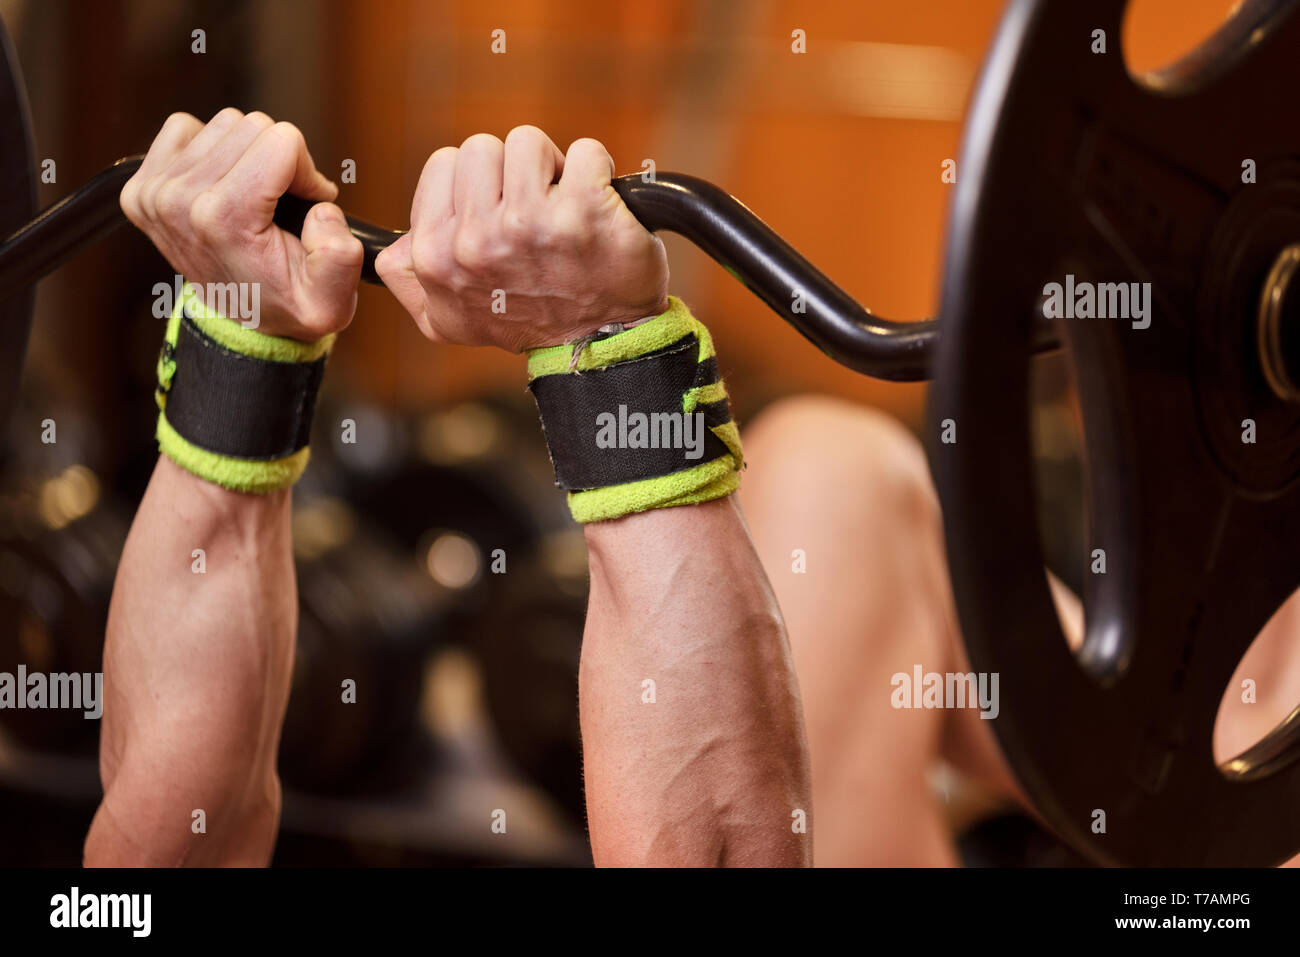 Handsome young muscular man close up, doing bench french press workout with barbell in gym . Stock Photo